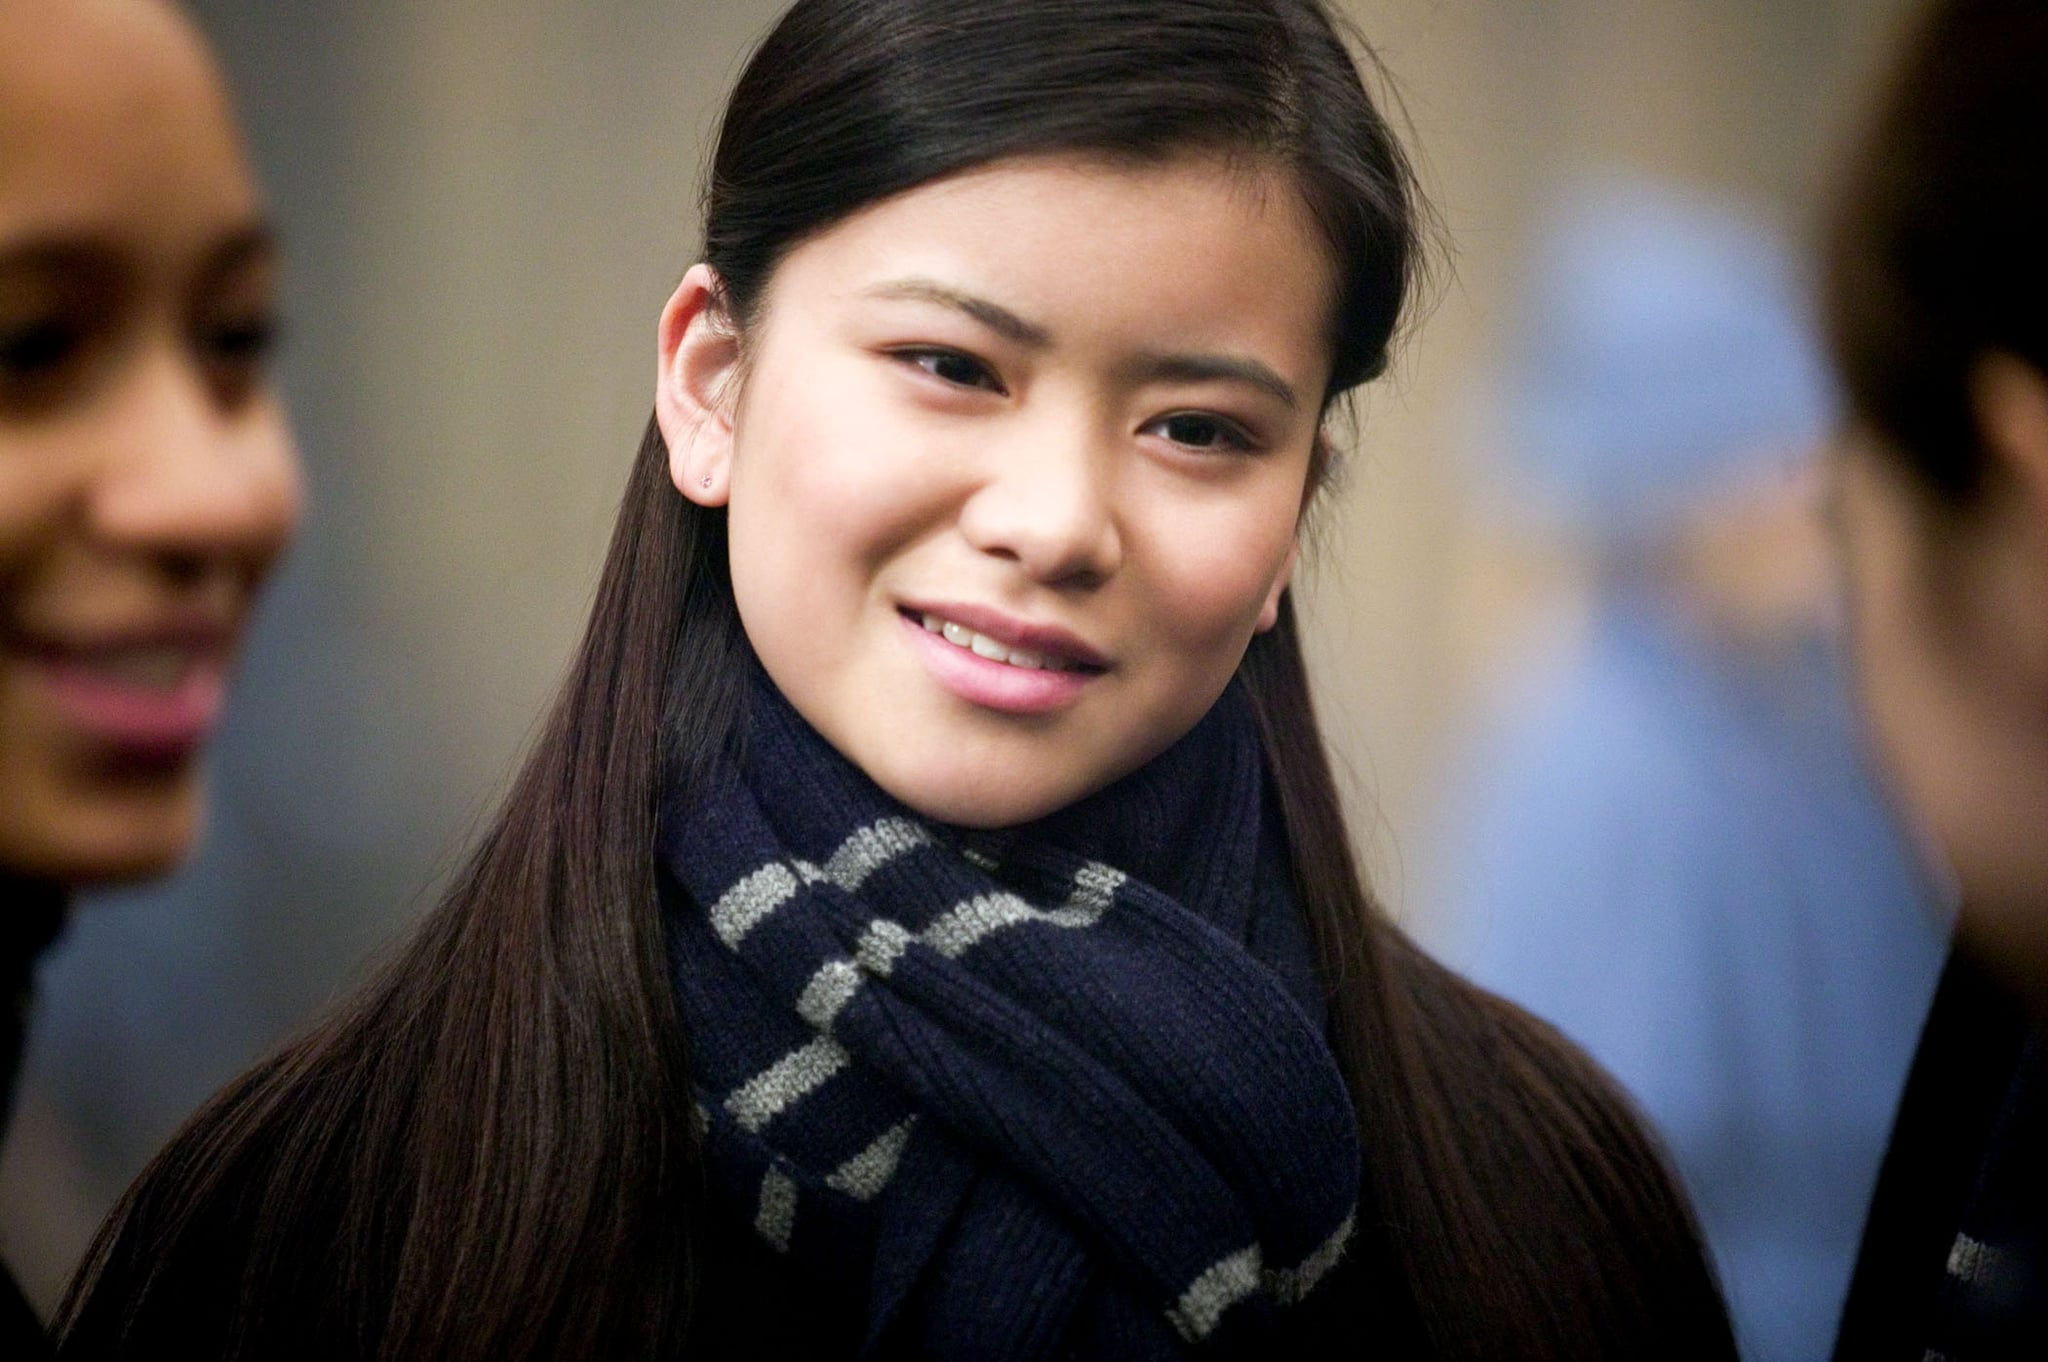 HARRY POTTER AND THE GOBLET OF FIRE, Katie Leung, 2005, (c) Warner Brothers/courtesy Everett Collection